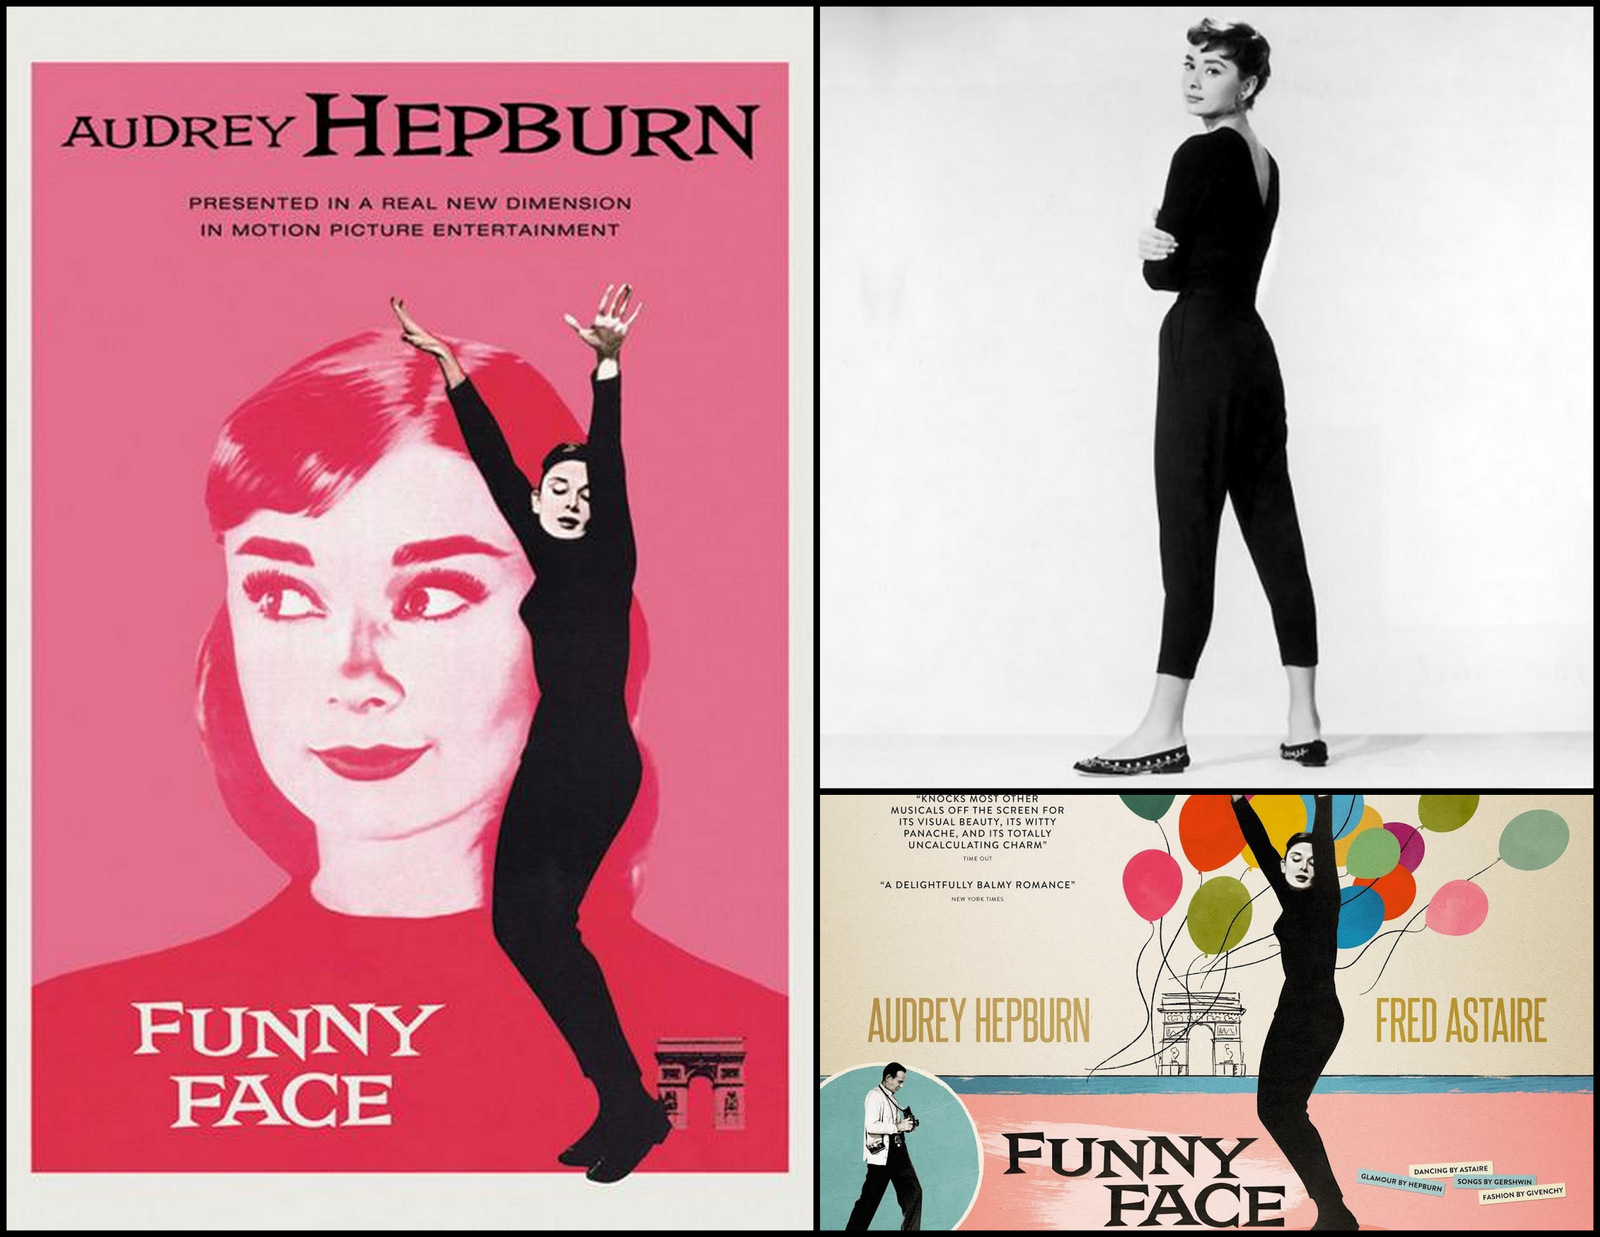 Audrey Hepburn, a former ballerina, contributed to the huge popularity of the ballet at this time in her costuming in FUNNY FACE. The ballet flat and leotard were influences of ballet culture and costuming on the world of fashion .